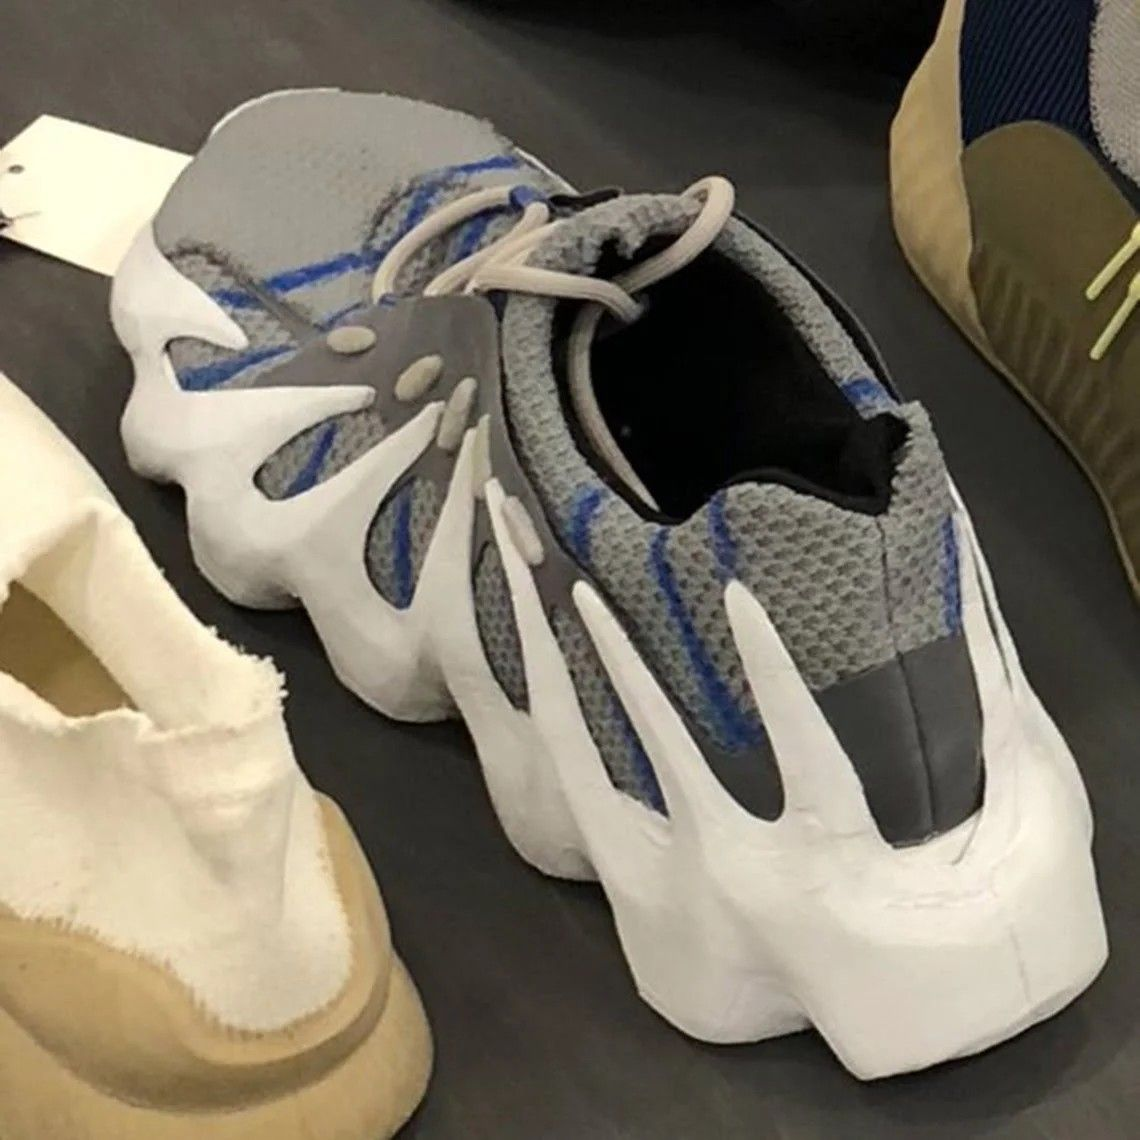 Adidas Yeezy New model later this year. | Yeezy sneakers